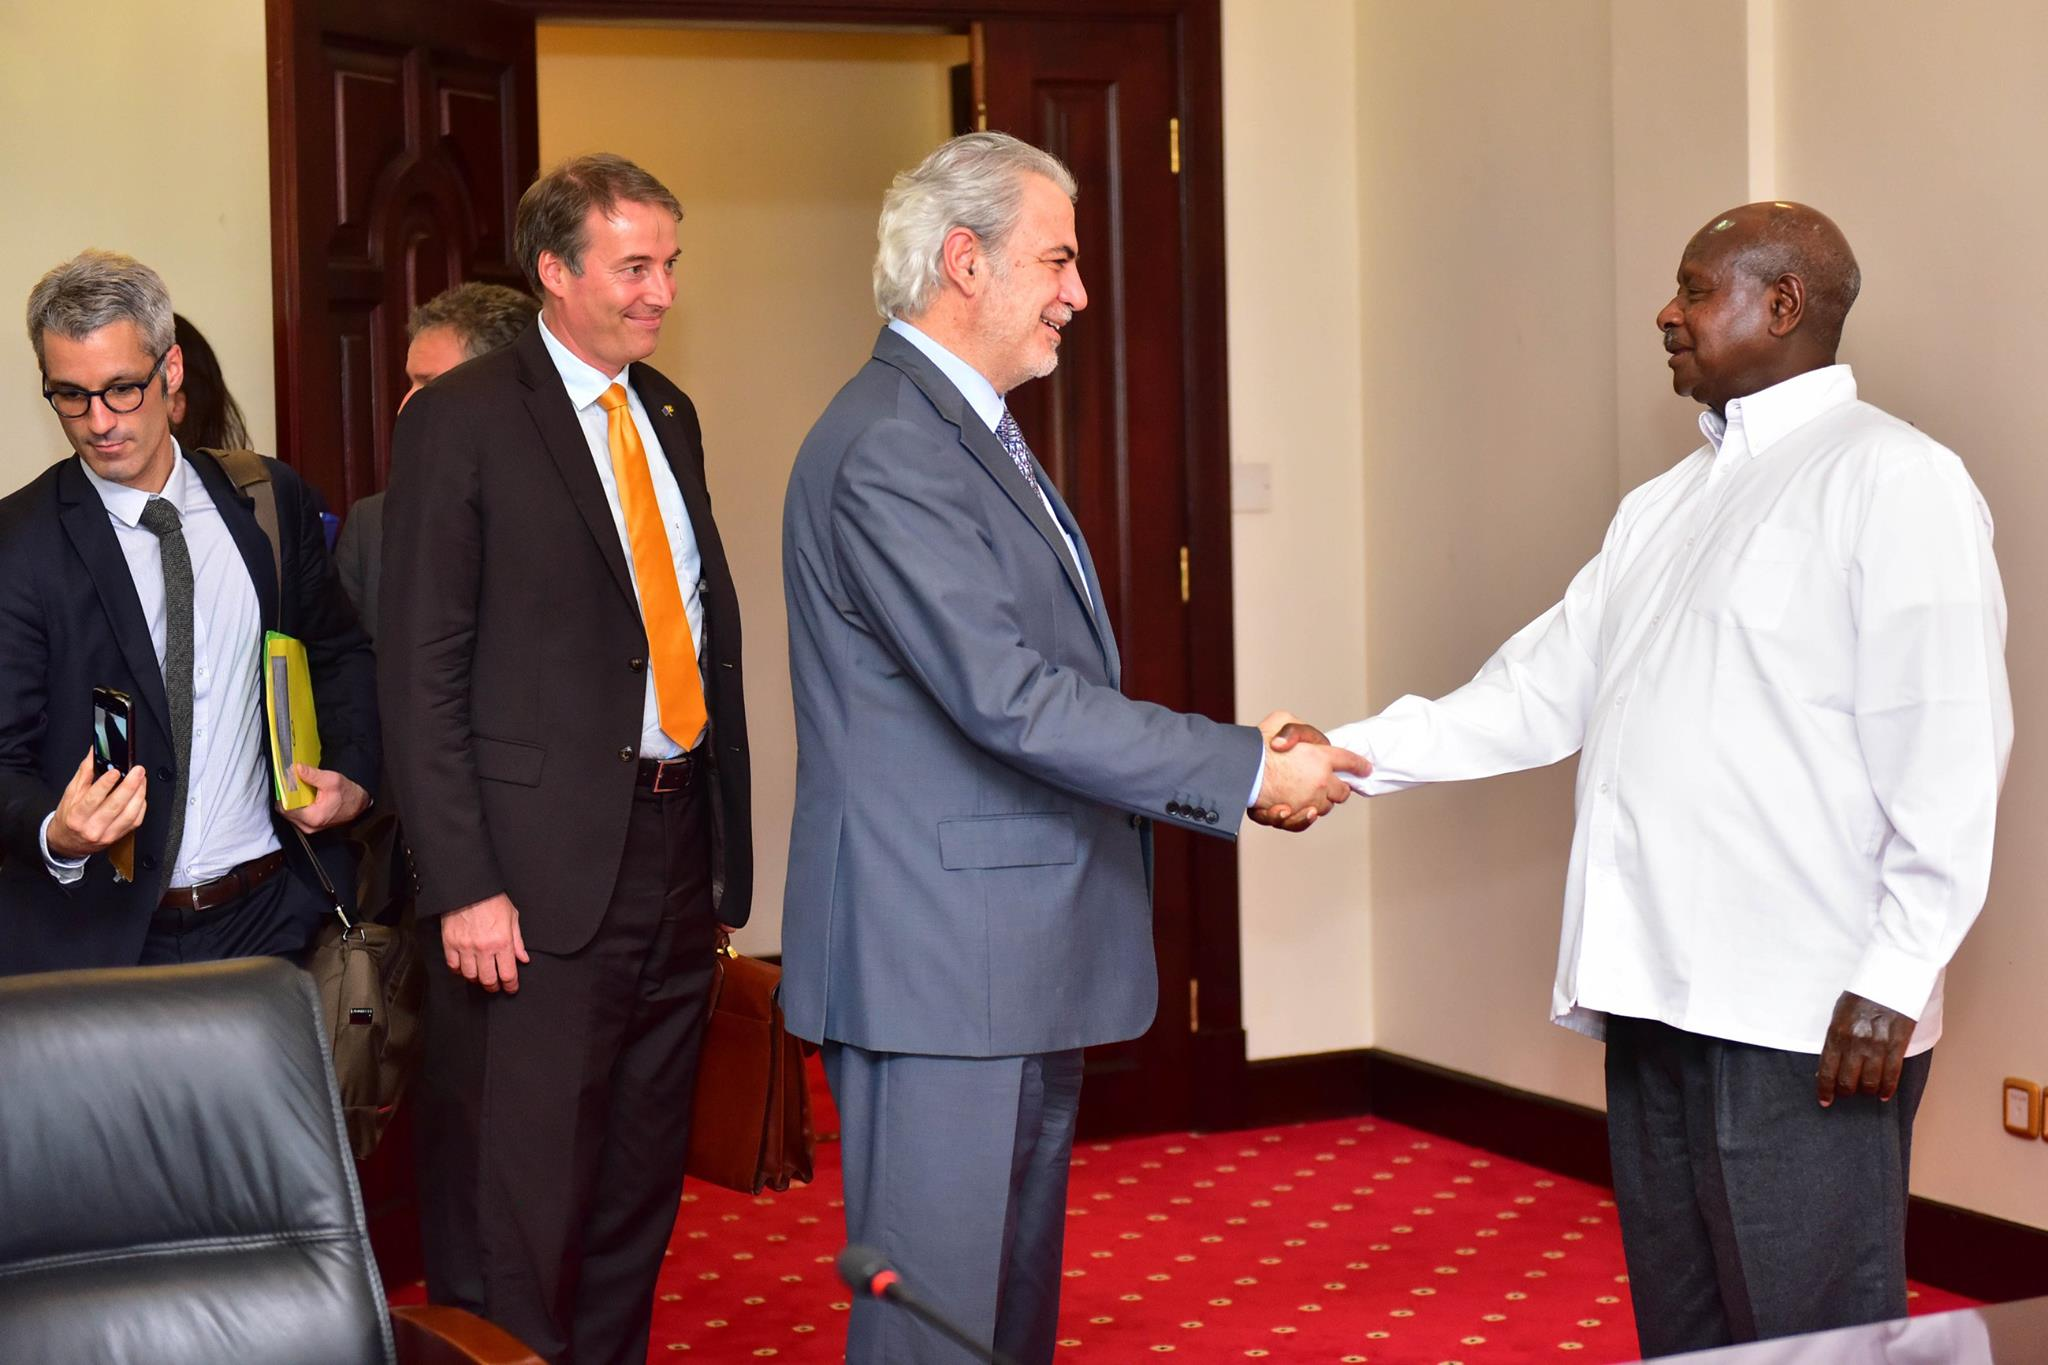 Commissioner for Humanitarian Aid and Crisis Management Christos Stylianides shakes hands with Ugandan President Yoweri Museveni during his visit to Uganda.